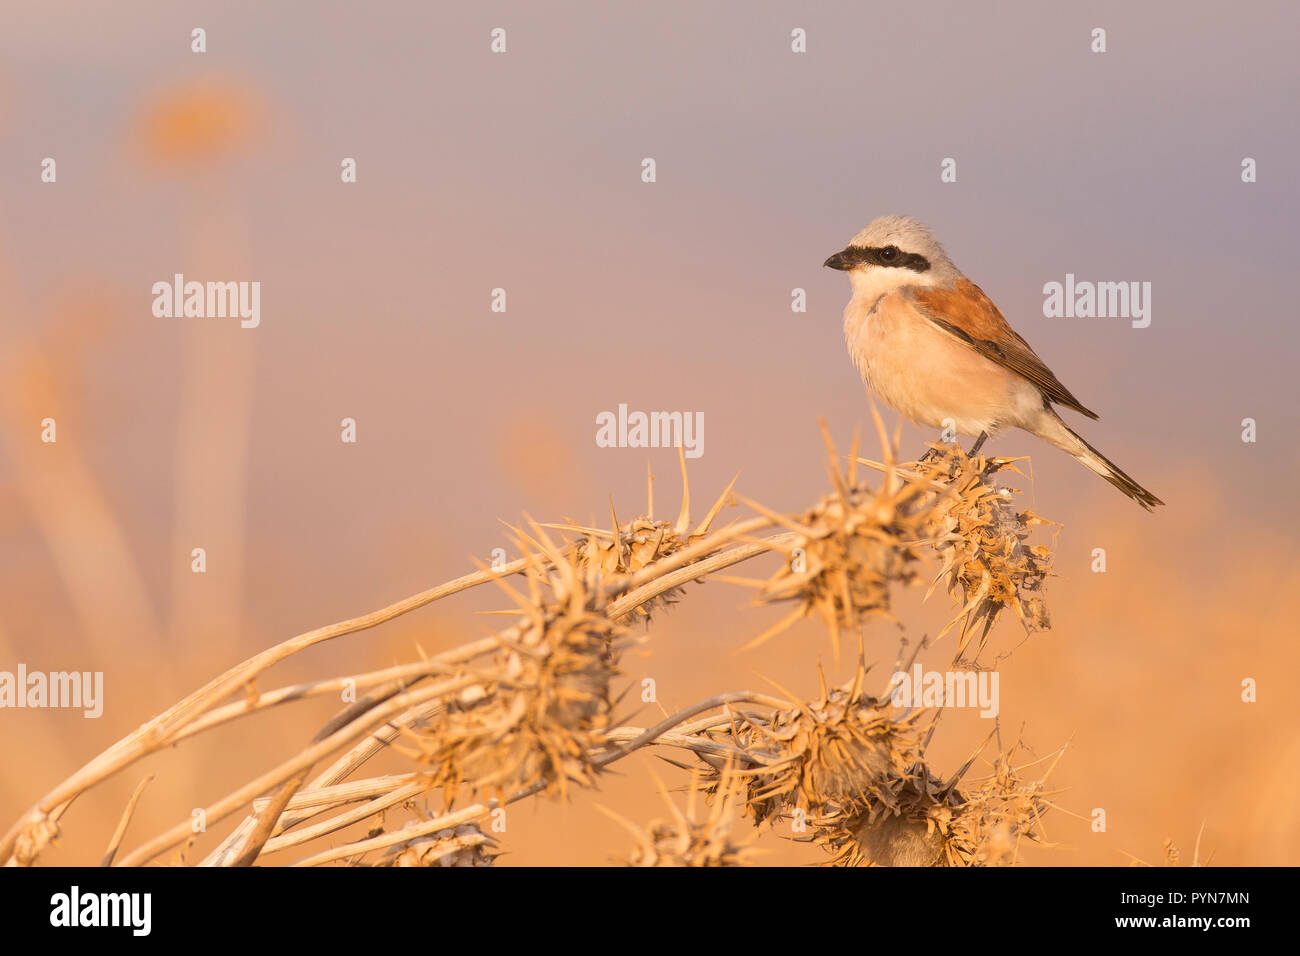 Male Red-backed shrike (Lanius collurio) perched on a branch. This bird is a predatory songbird that has a hooked beak to feed on meat, but lacks the  - Stock Image